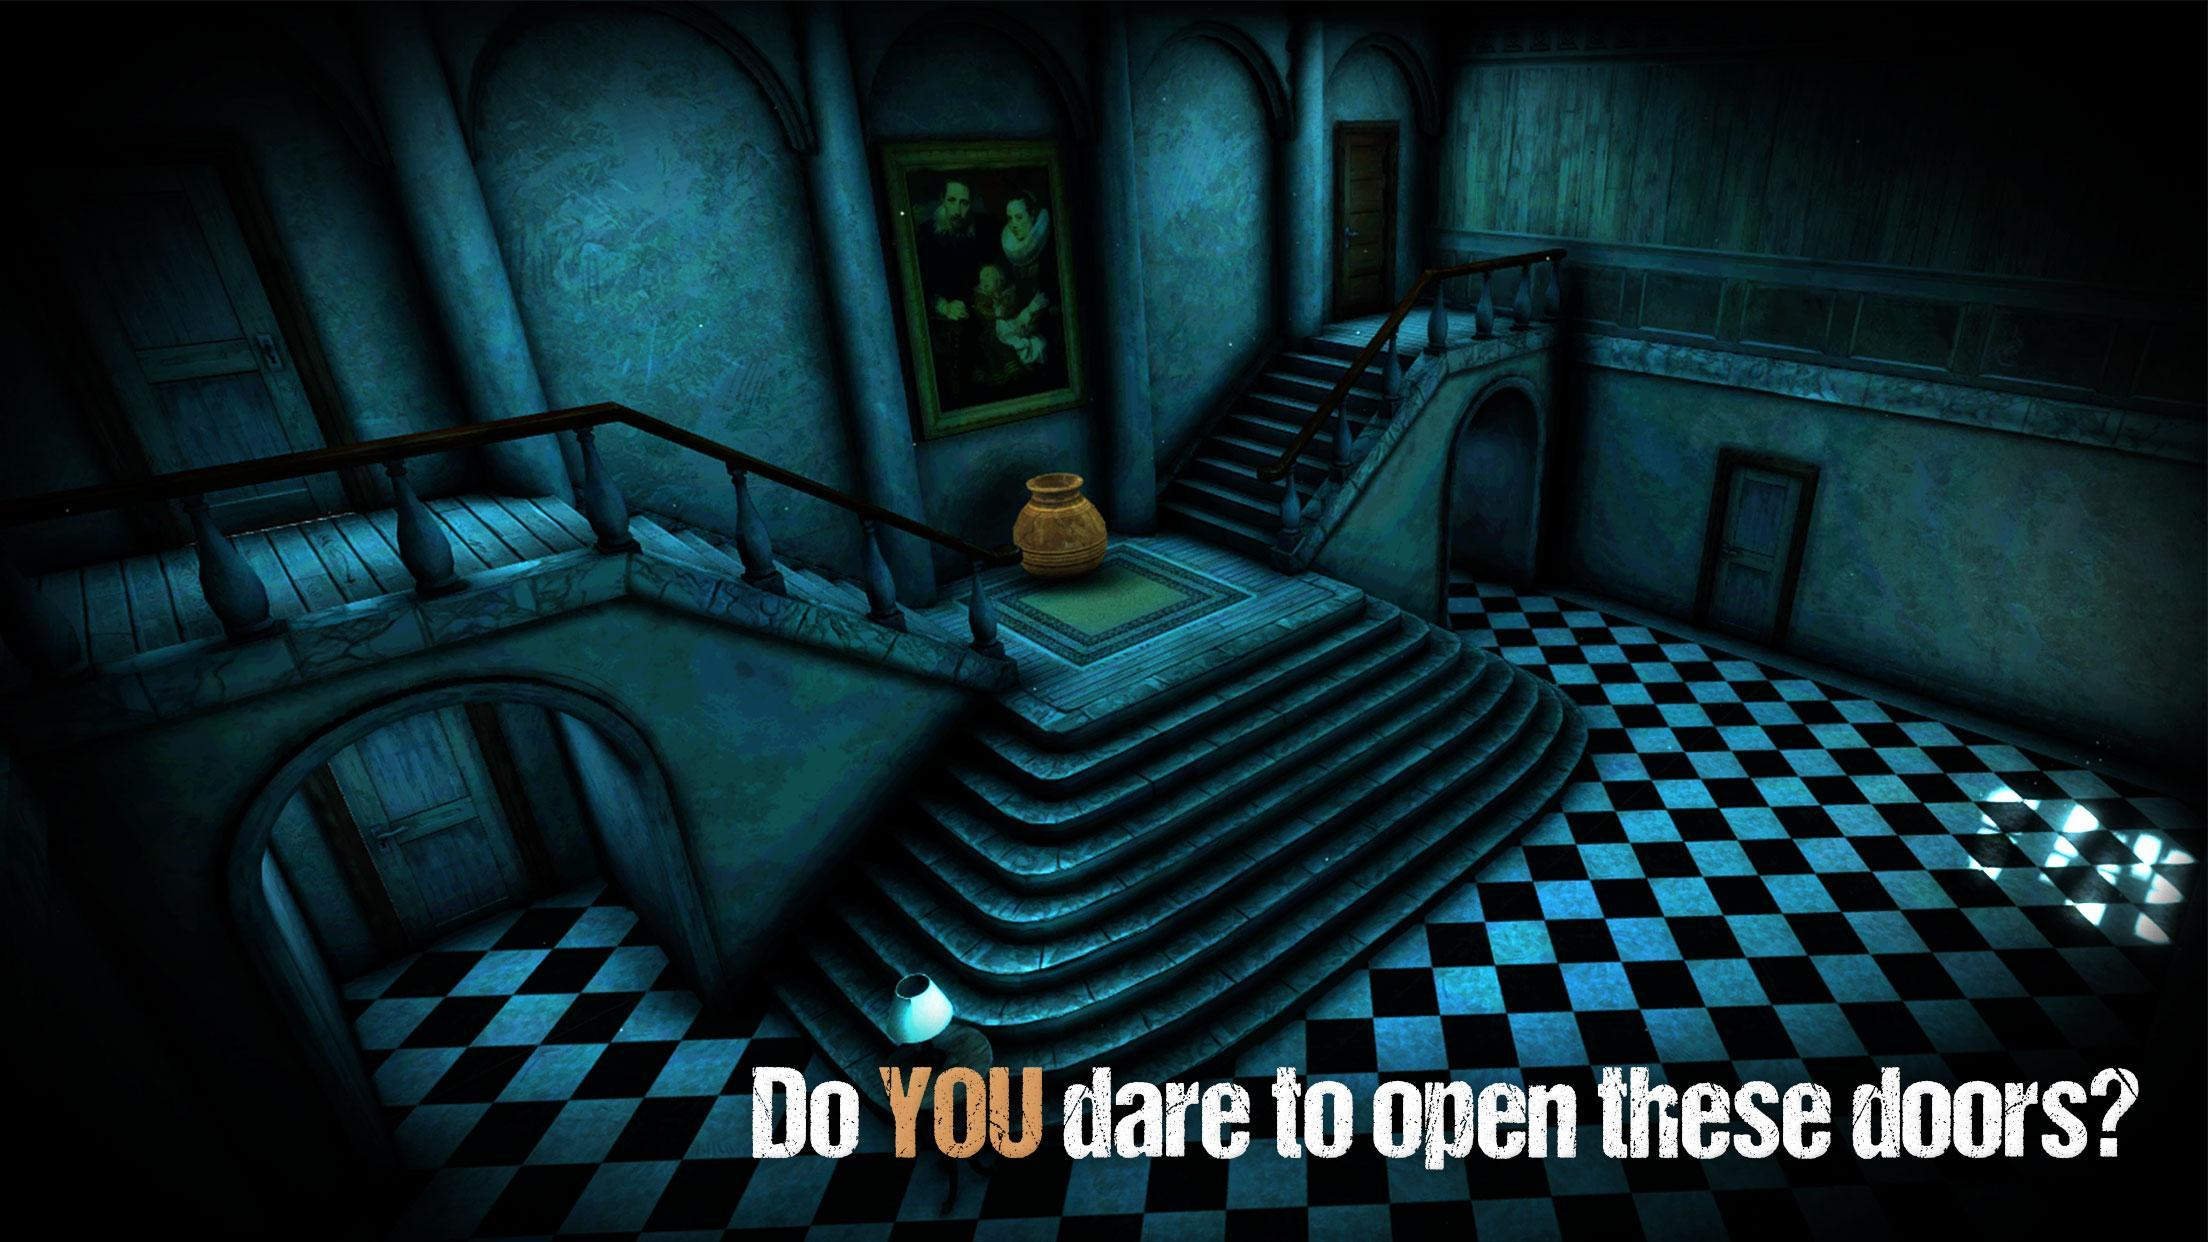 Sinister Edge Scary Horror Games 2.4.1 Screenshot 12